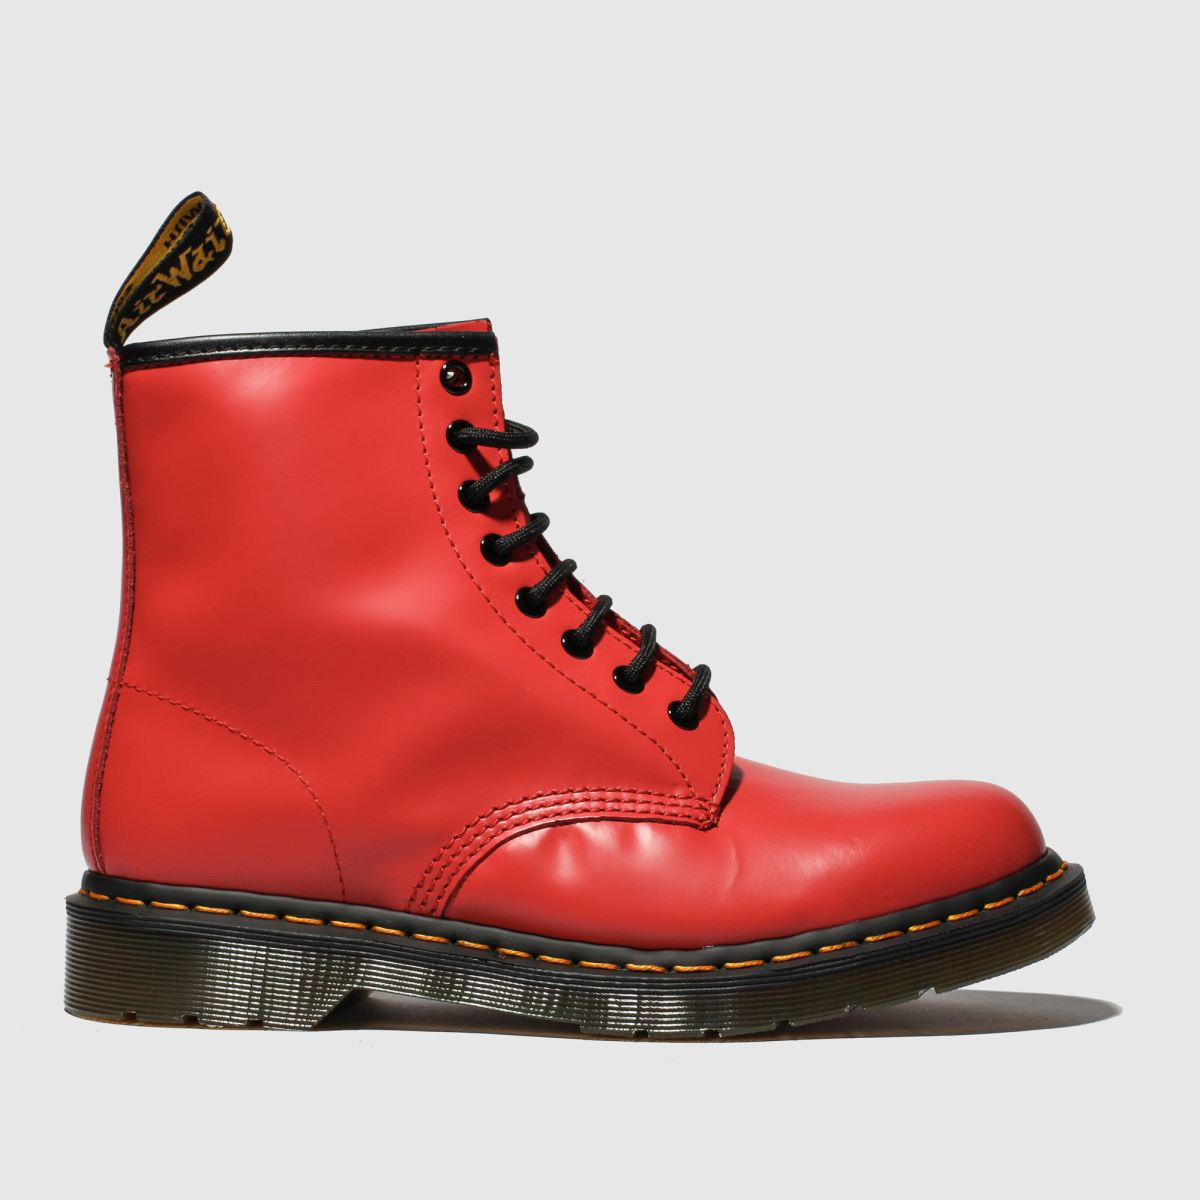 Dr Martens Red 1460 Boots